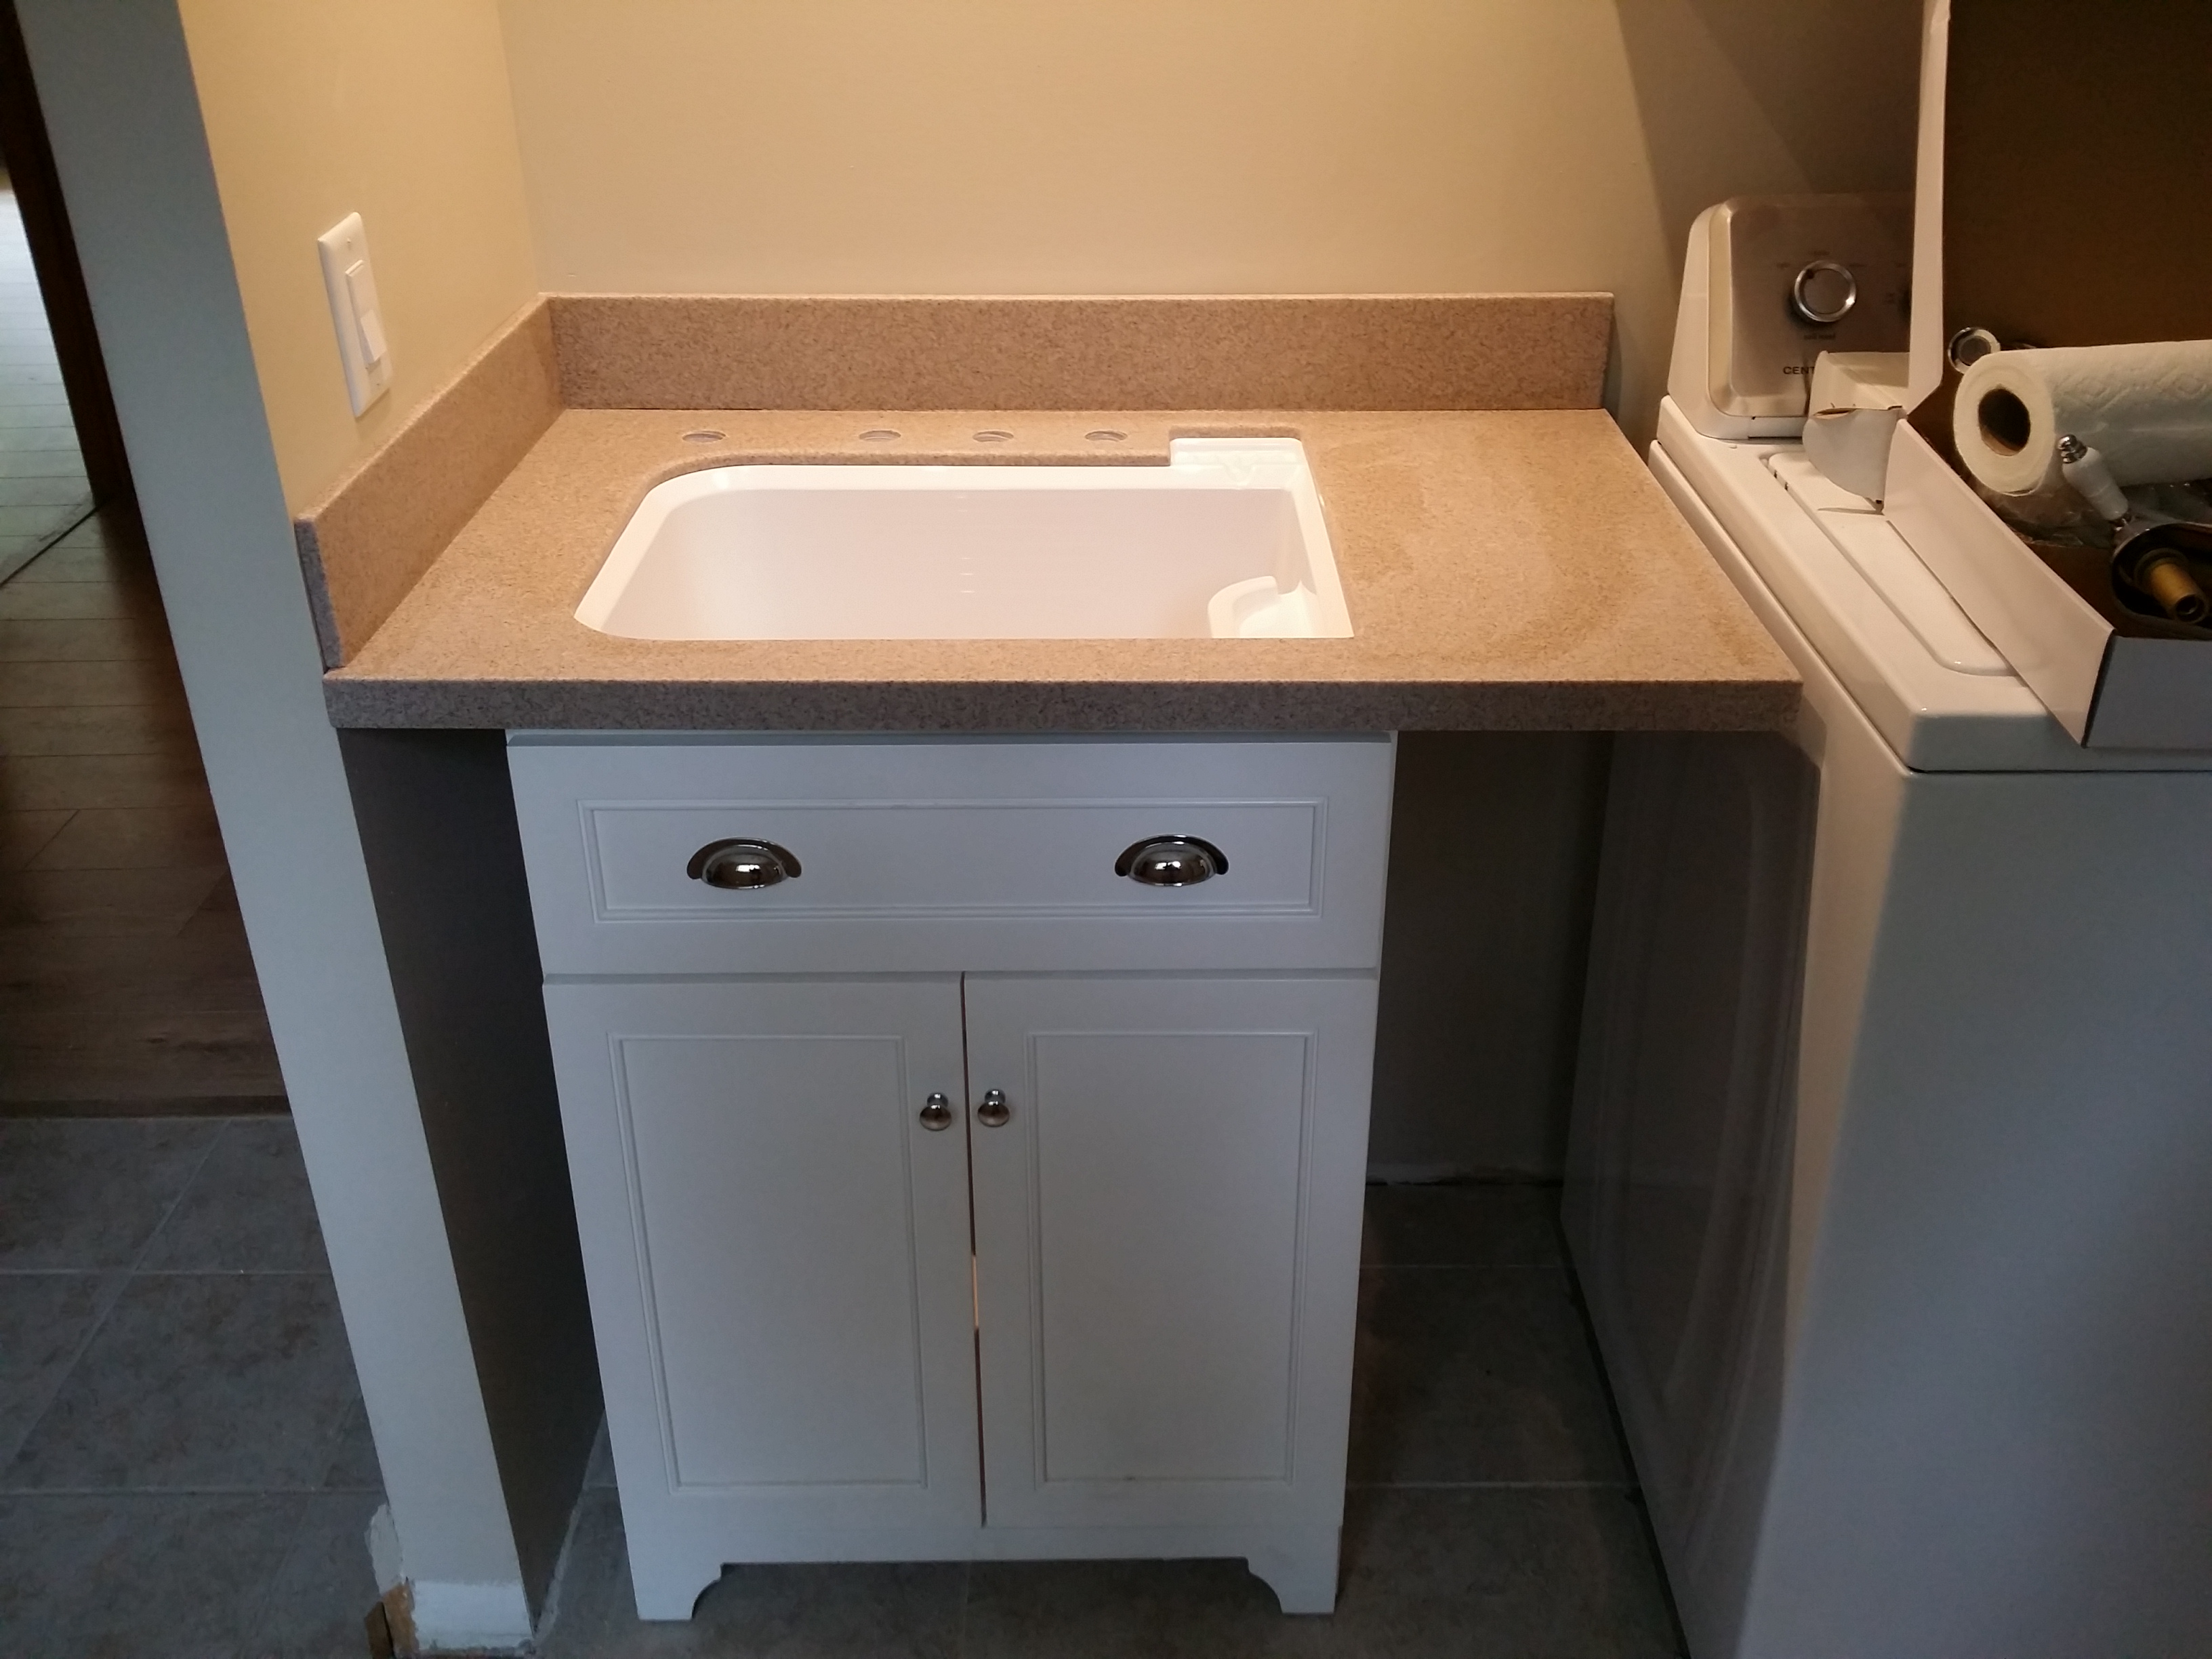 Laundry Room Counter in Solid Surface